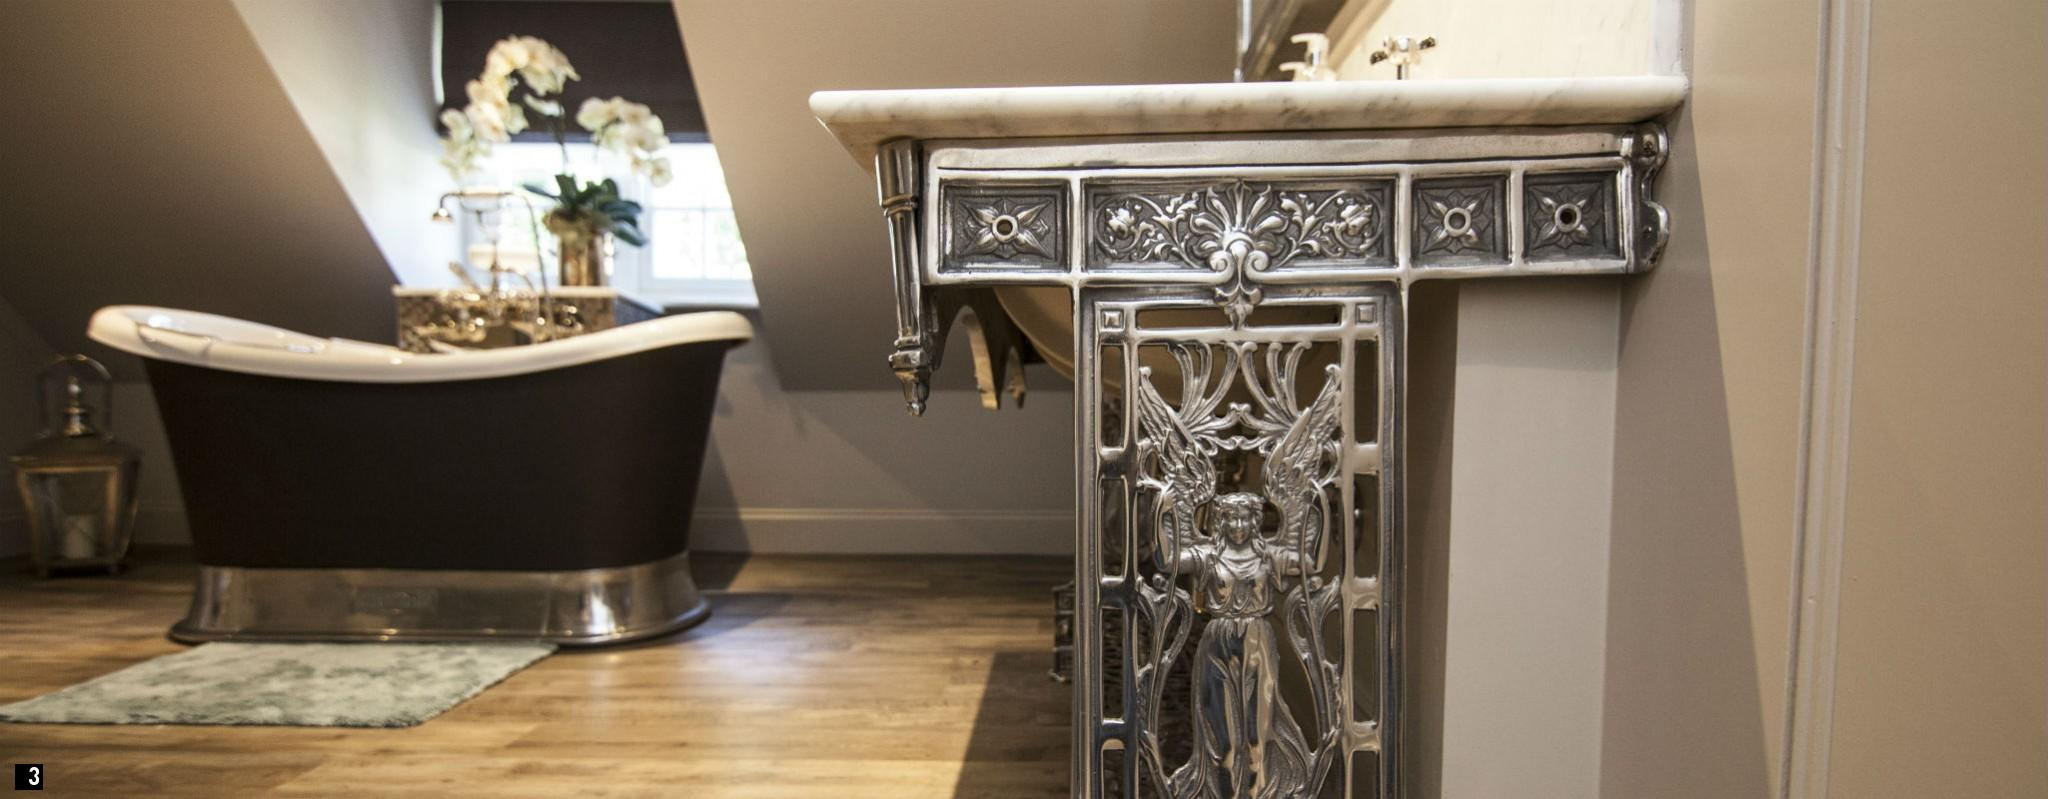 Chadder Vintage Victorian Washstand Nickel Fittings and Marble Top